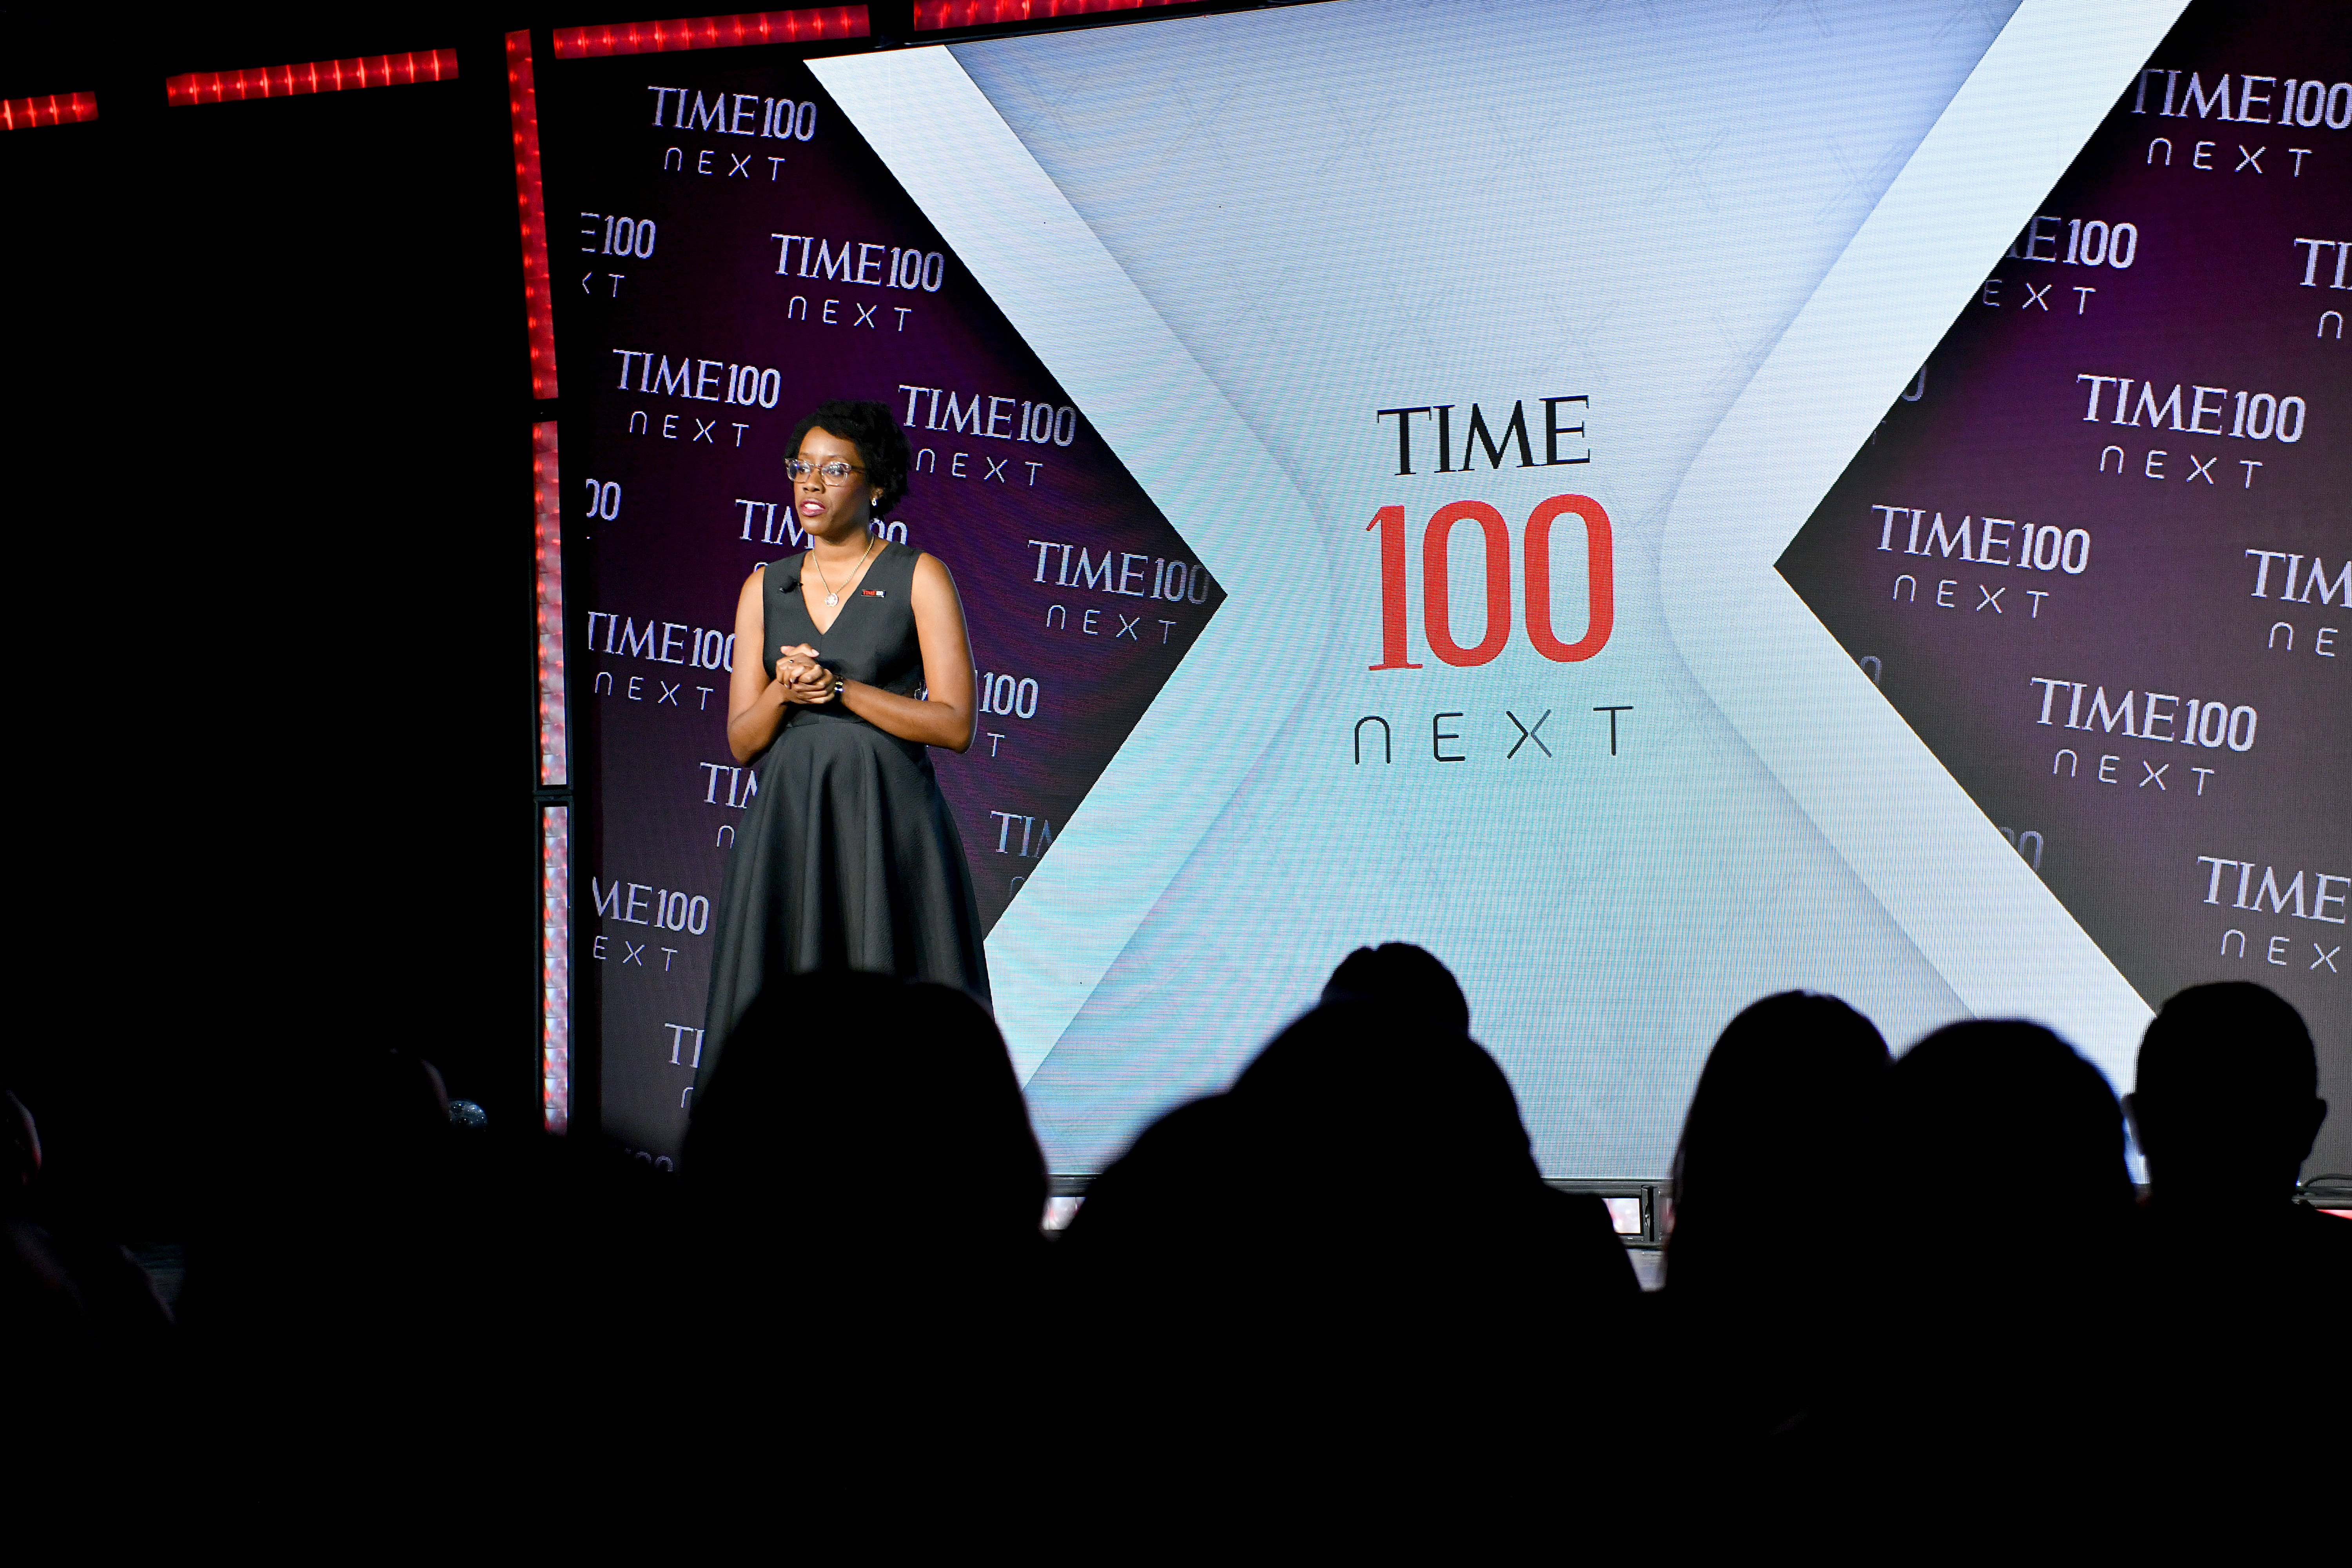 Rep. Lauren Underwood speaks onstage during TIME 100 Next 2019 at Pier 17 on November 14, 2019 in New York City.